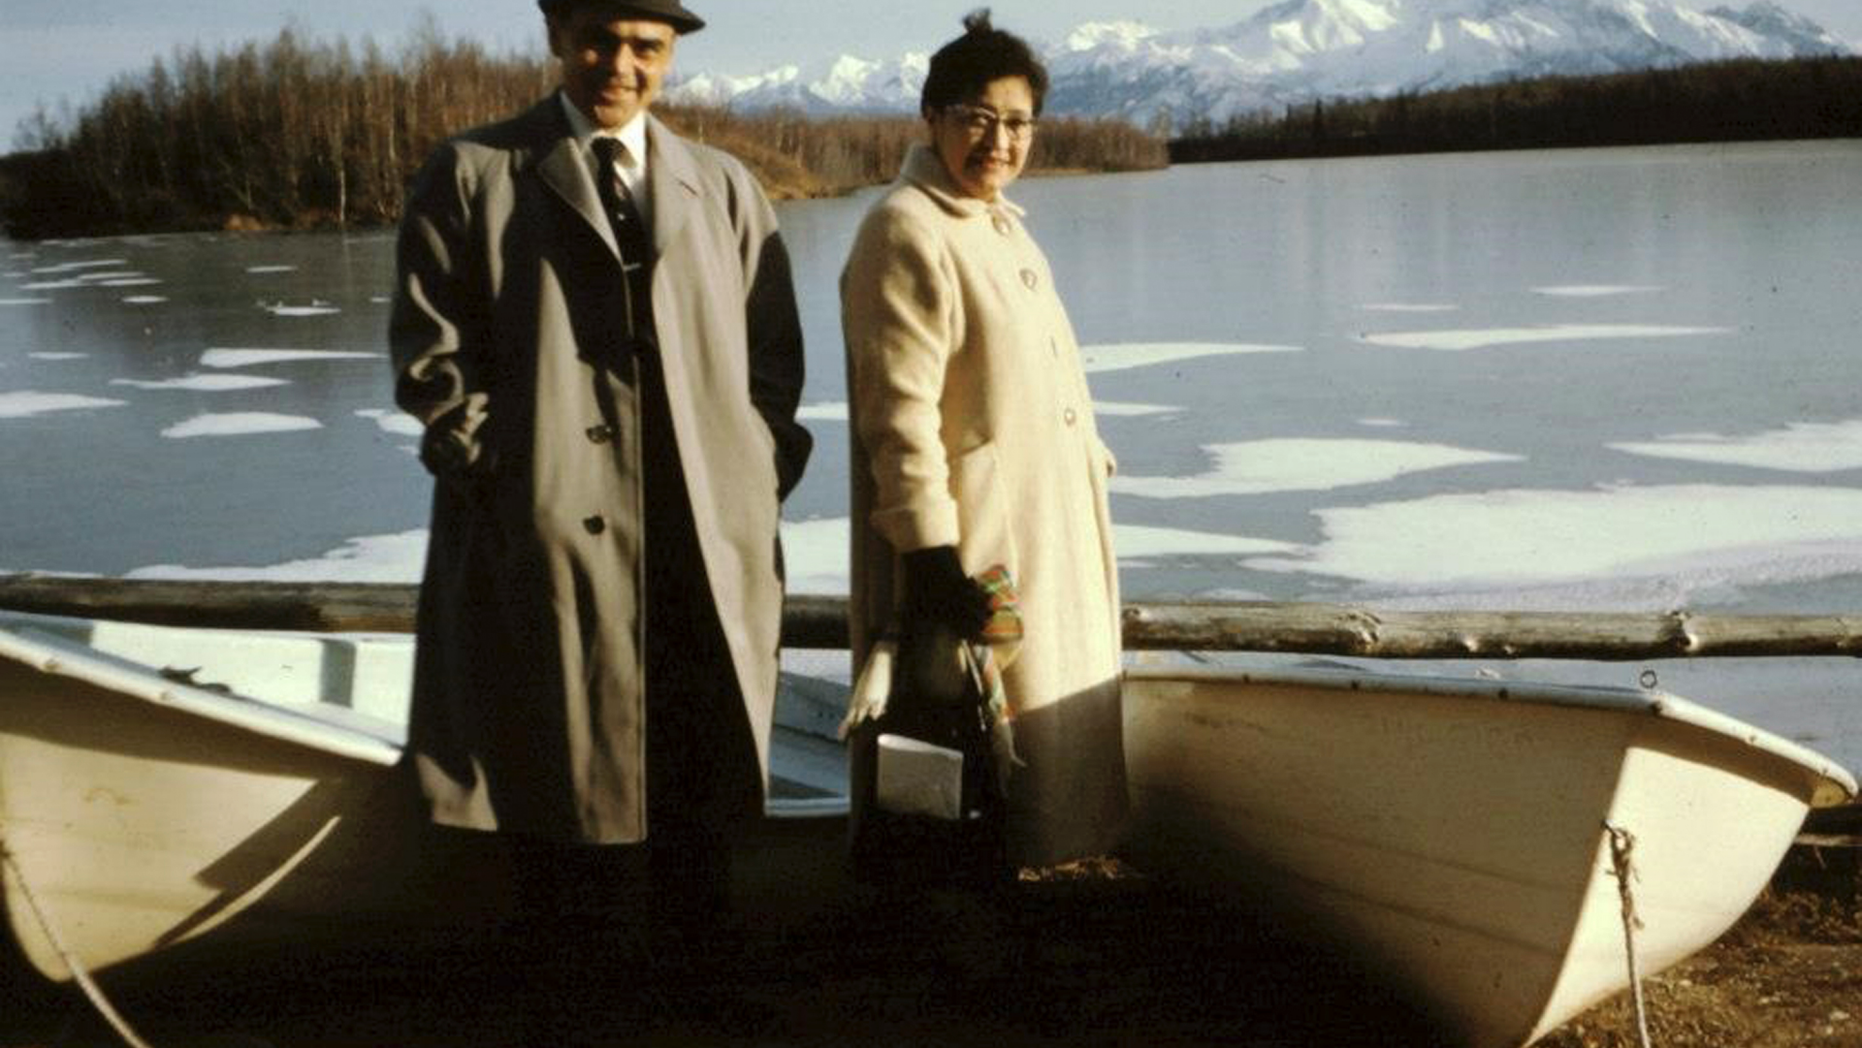 This undated photo provided by relatives shows the late Army veteran Richard Bean Sr. of Hoonah, Alaska and his wife Edith. Bean was among five long-deceased men who are being hailed by the state in March 2019 for their life-saving efforts during World War II for using their Native language to help the military outsmart the Japanese with Tlingit codes they could not break. (Family of Richard Bean Sr. via AP)